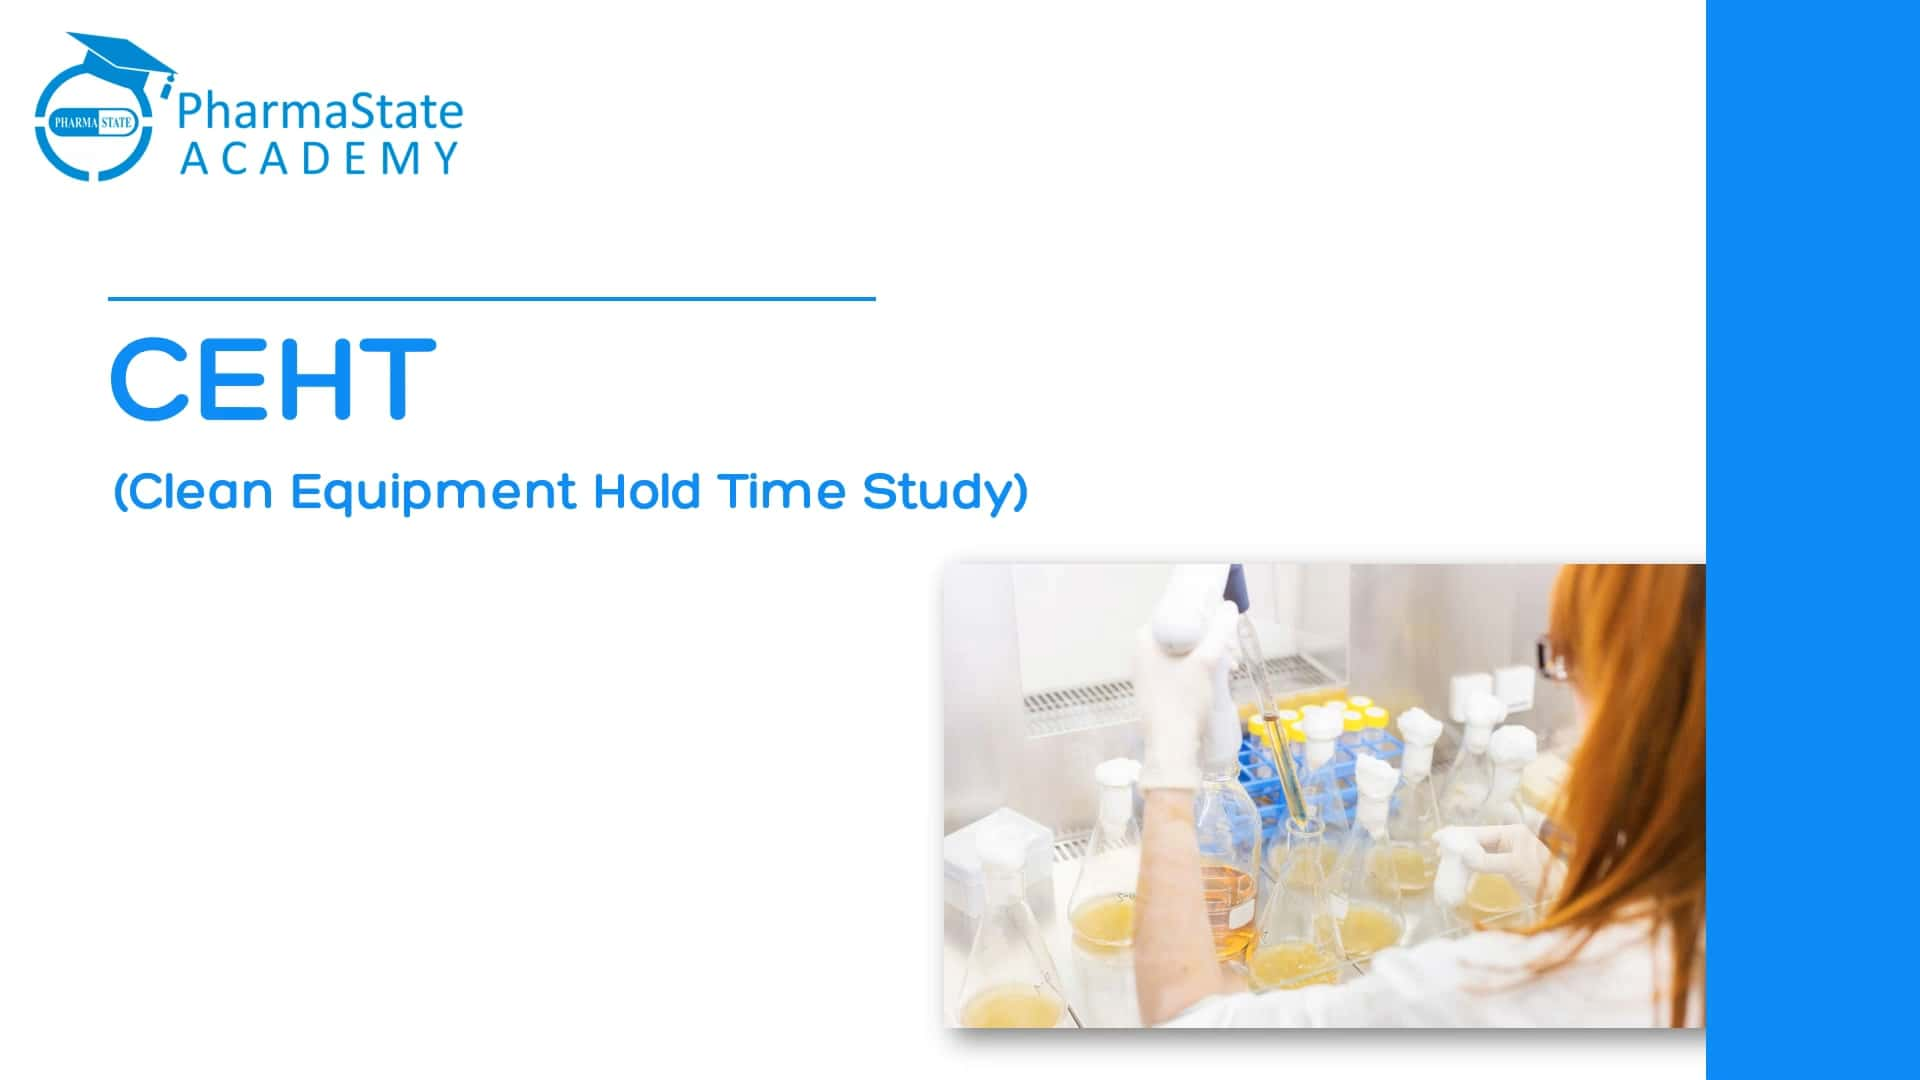 Clean Equipment Hold Time Study